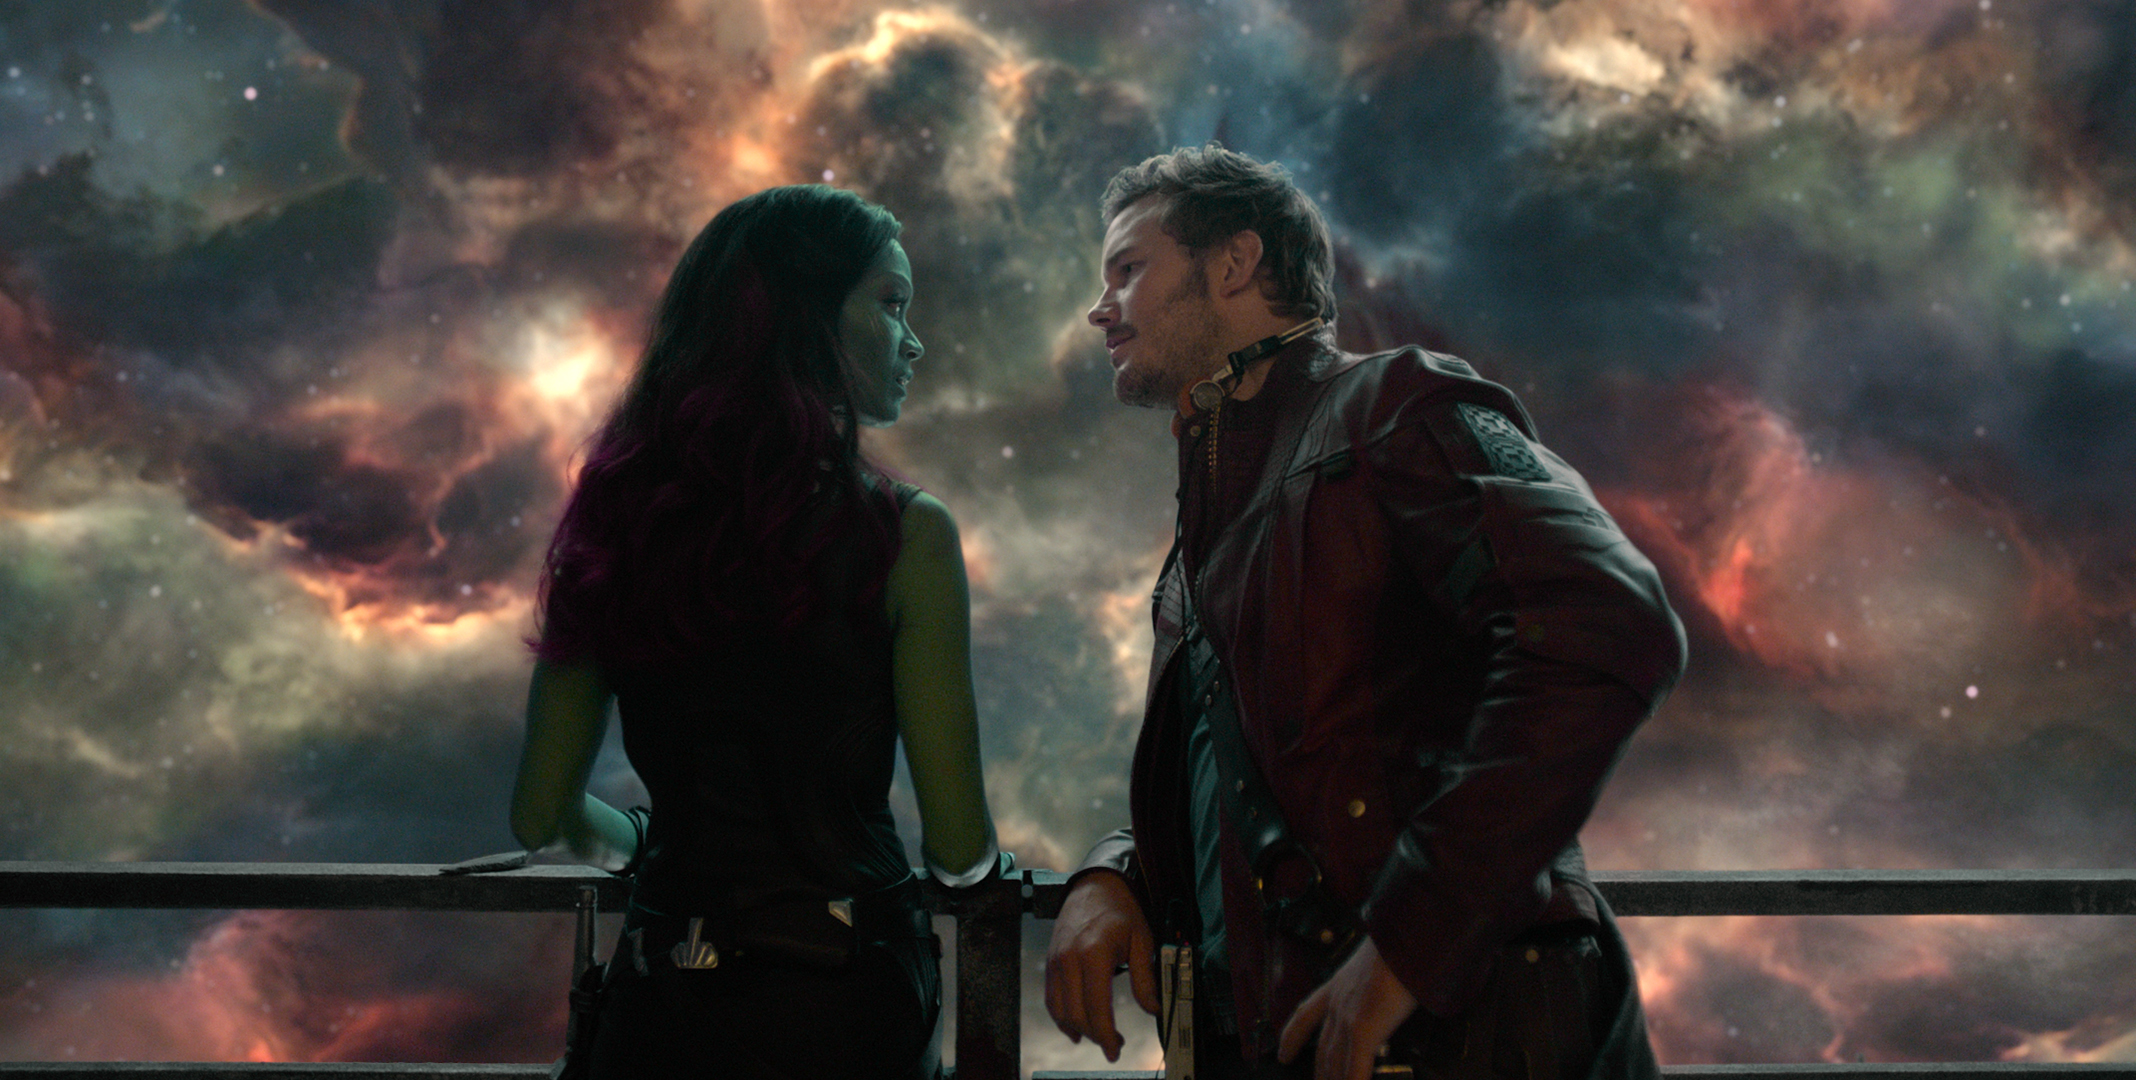 Good Wallpaper Movie Guardians The Galaxy - Guardians-of-the-Galaxy-Star-Lord-Gamora-Wallpaper  Pictures_632793.jpg